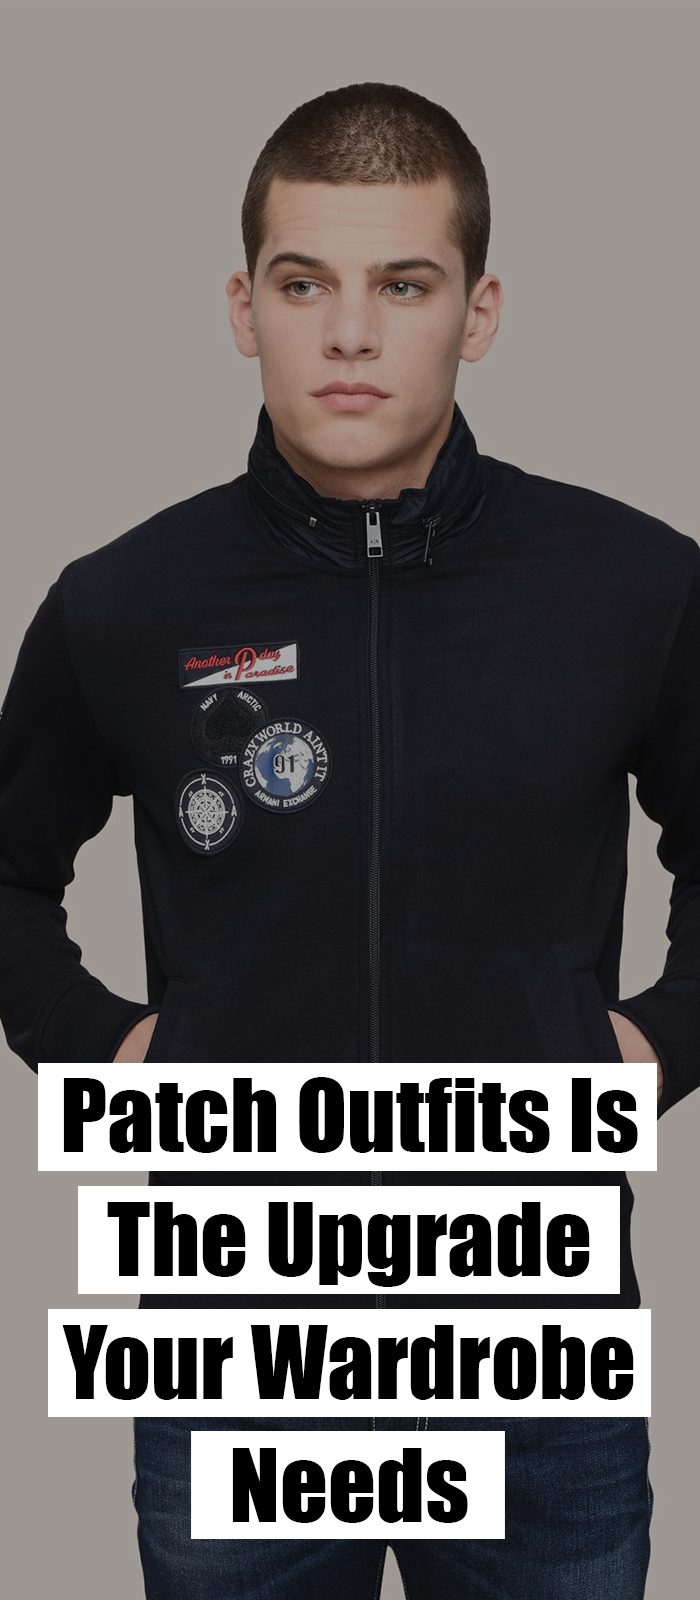 Patch Outfits Is The Upgrade Your Wardrobe Needs